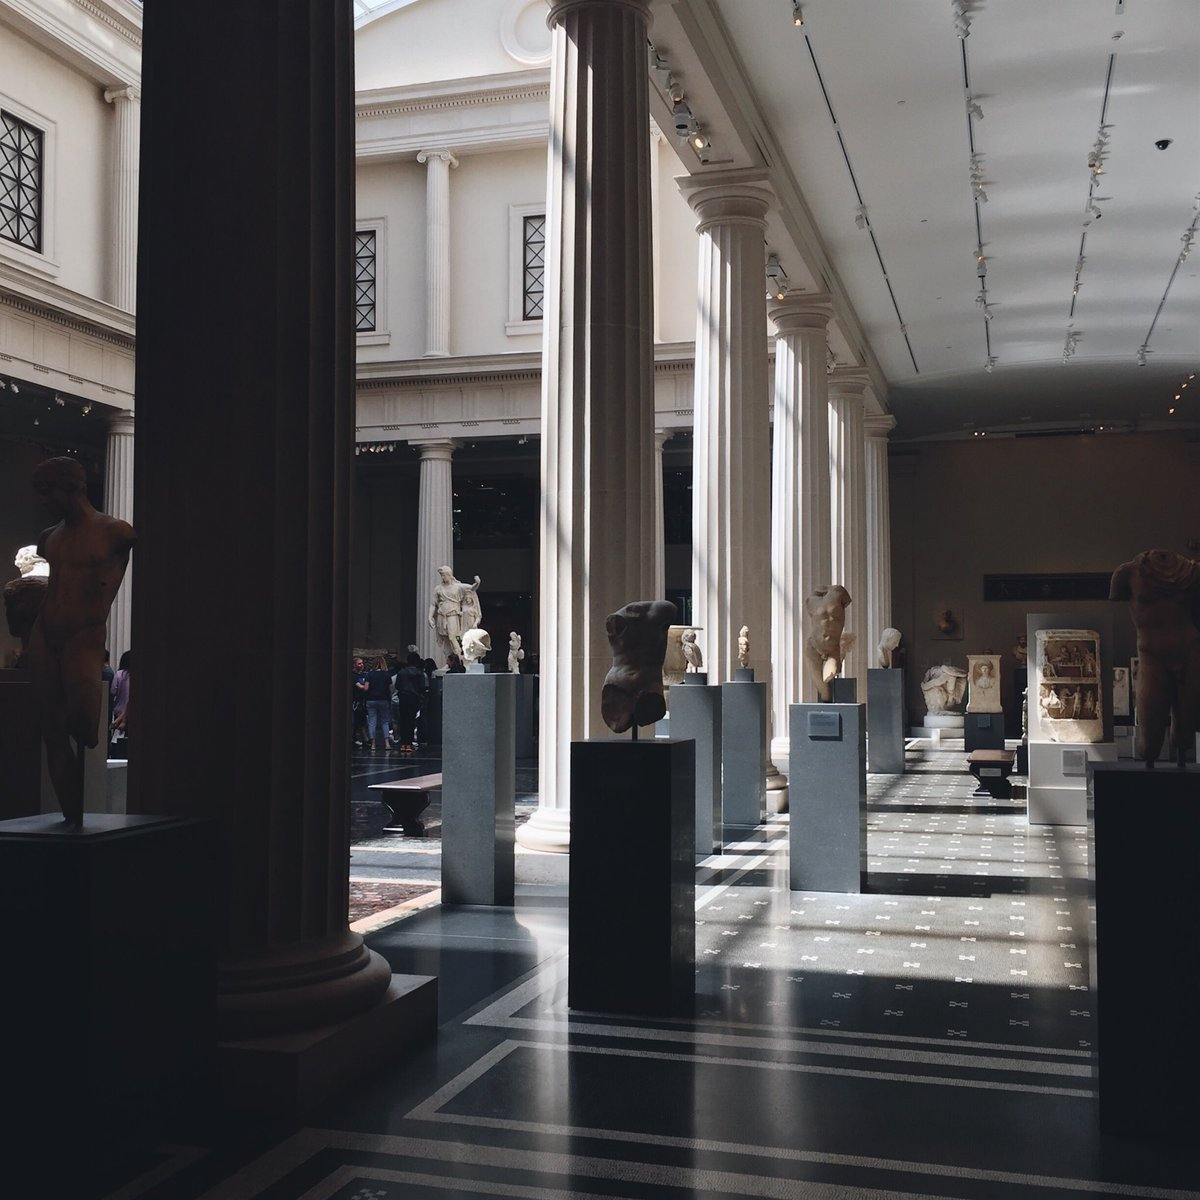 My happy place is the @metmuseum https://t.co/83Tjcuahlx